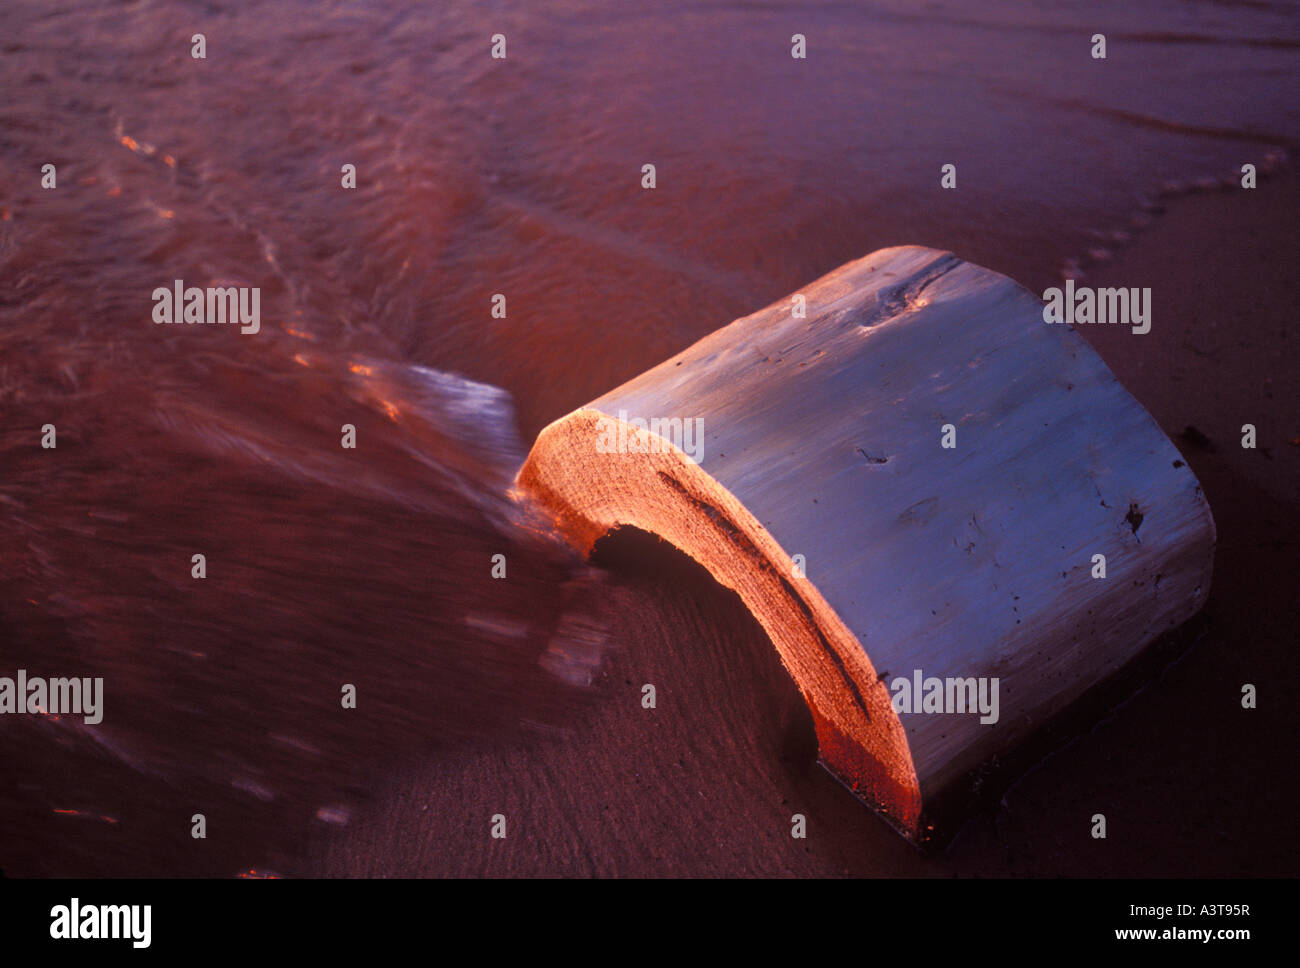 Lsp Stock Photos & Lsp Stock Images - Alamy